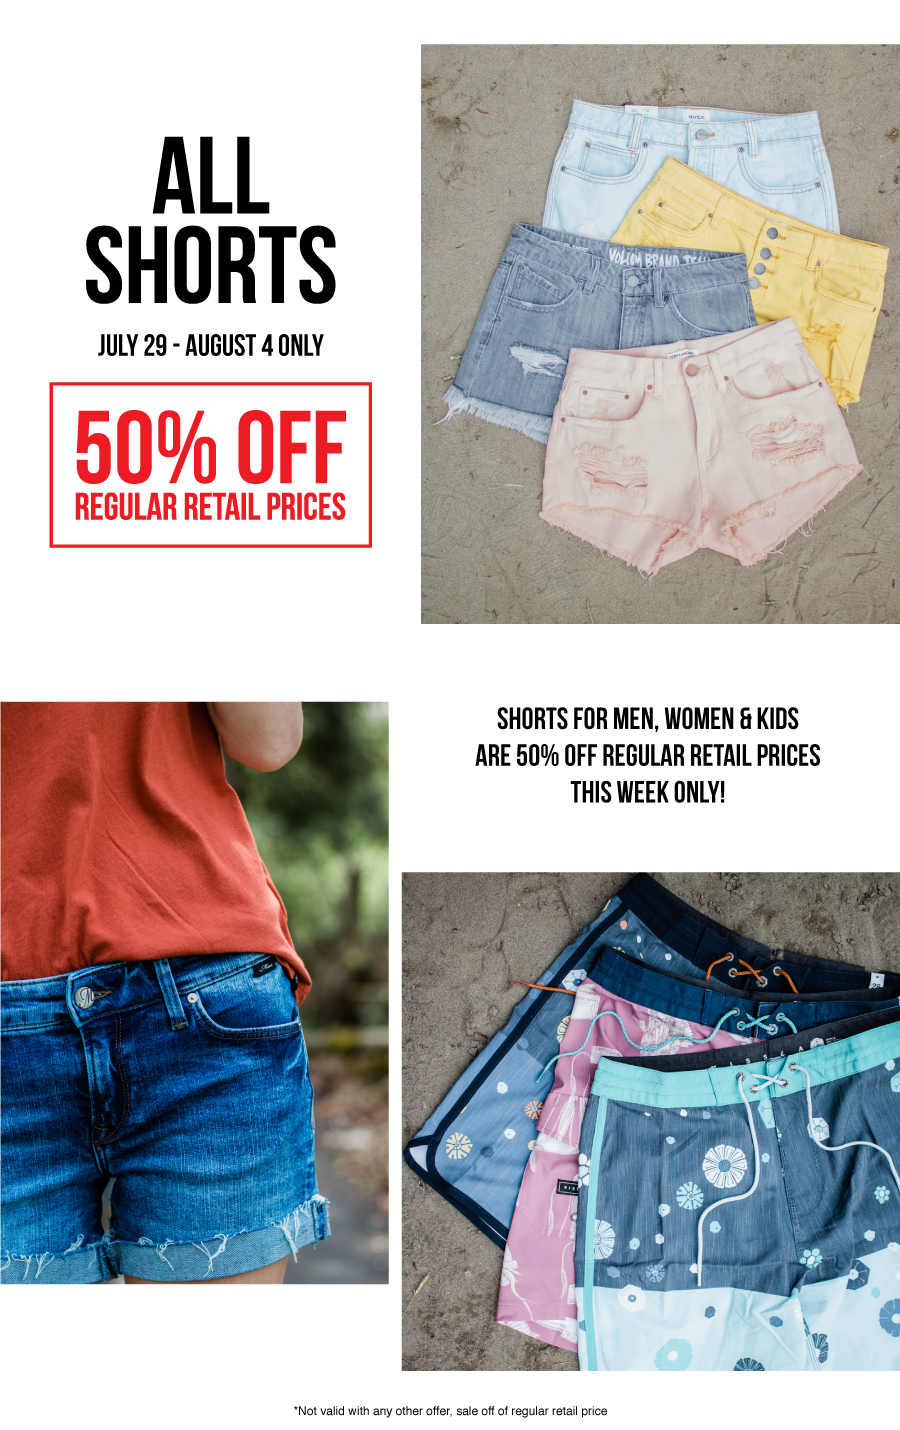 DEAL OF THE WEEK: 50% off all brand name shorts for men, women and kids!